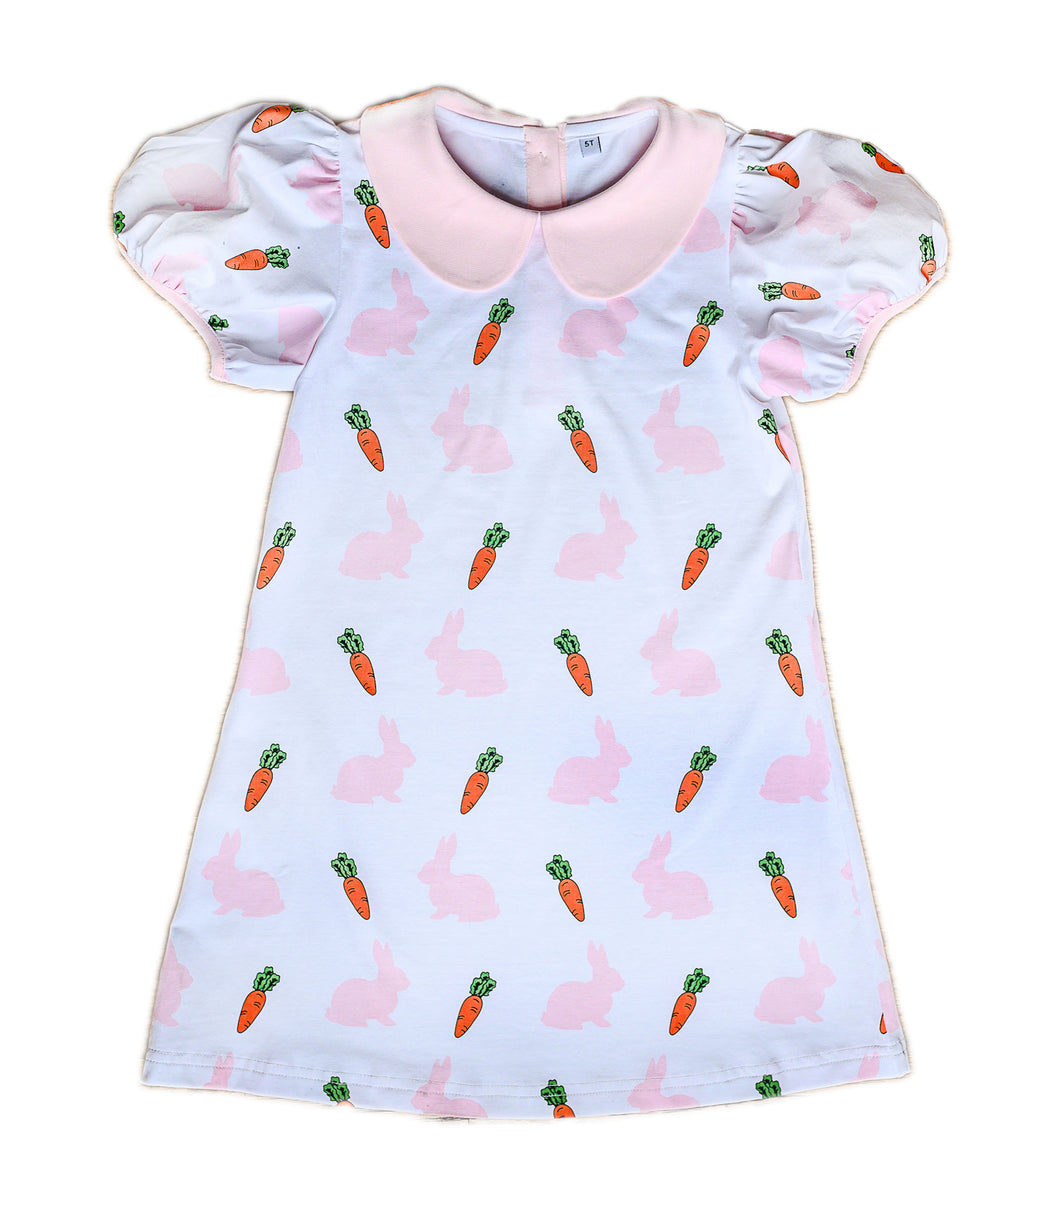 Bunnies & Carrots Play Dress